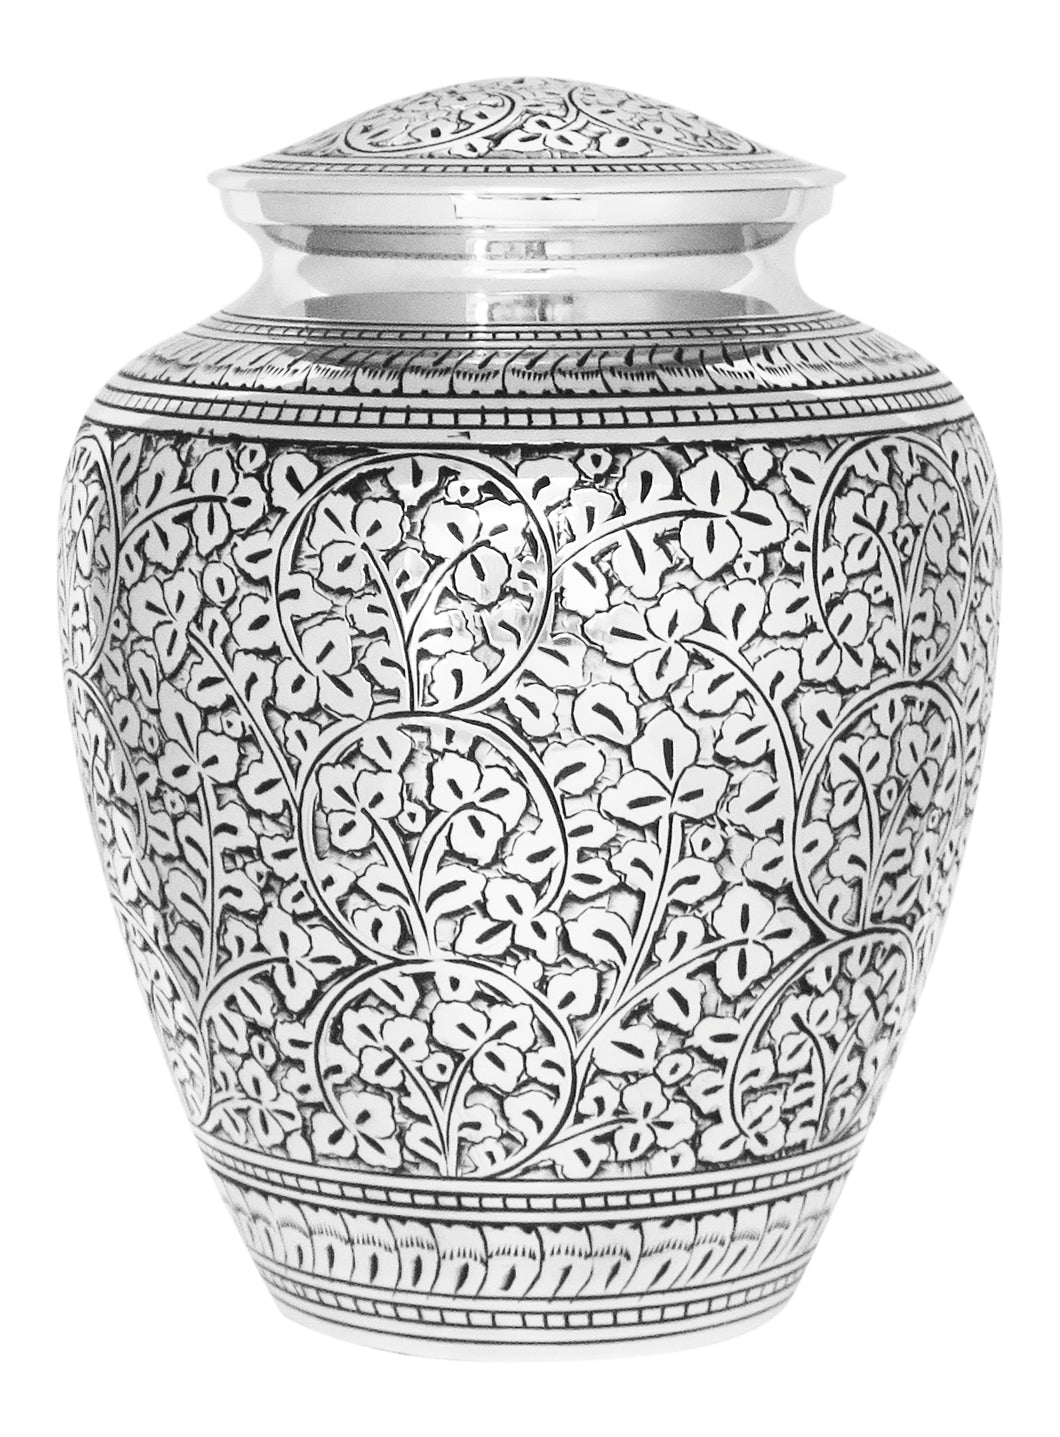 Large Silver Vintage Urn for Adult or Pet Ashes Cremains Memorial Funeral